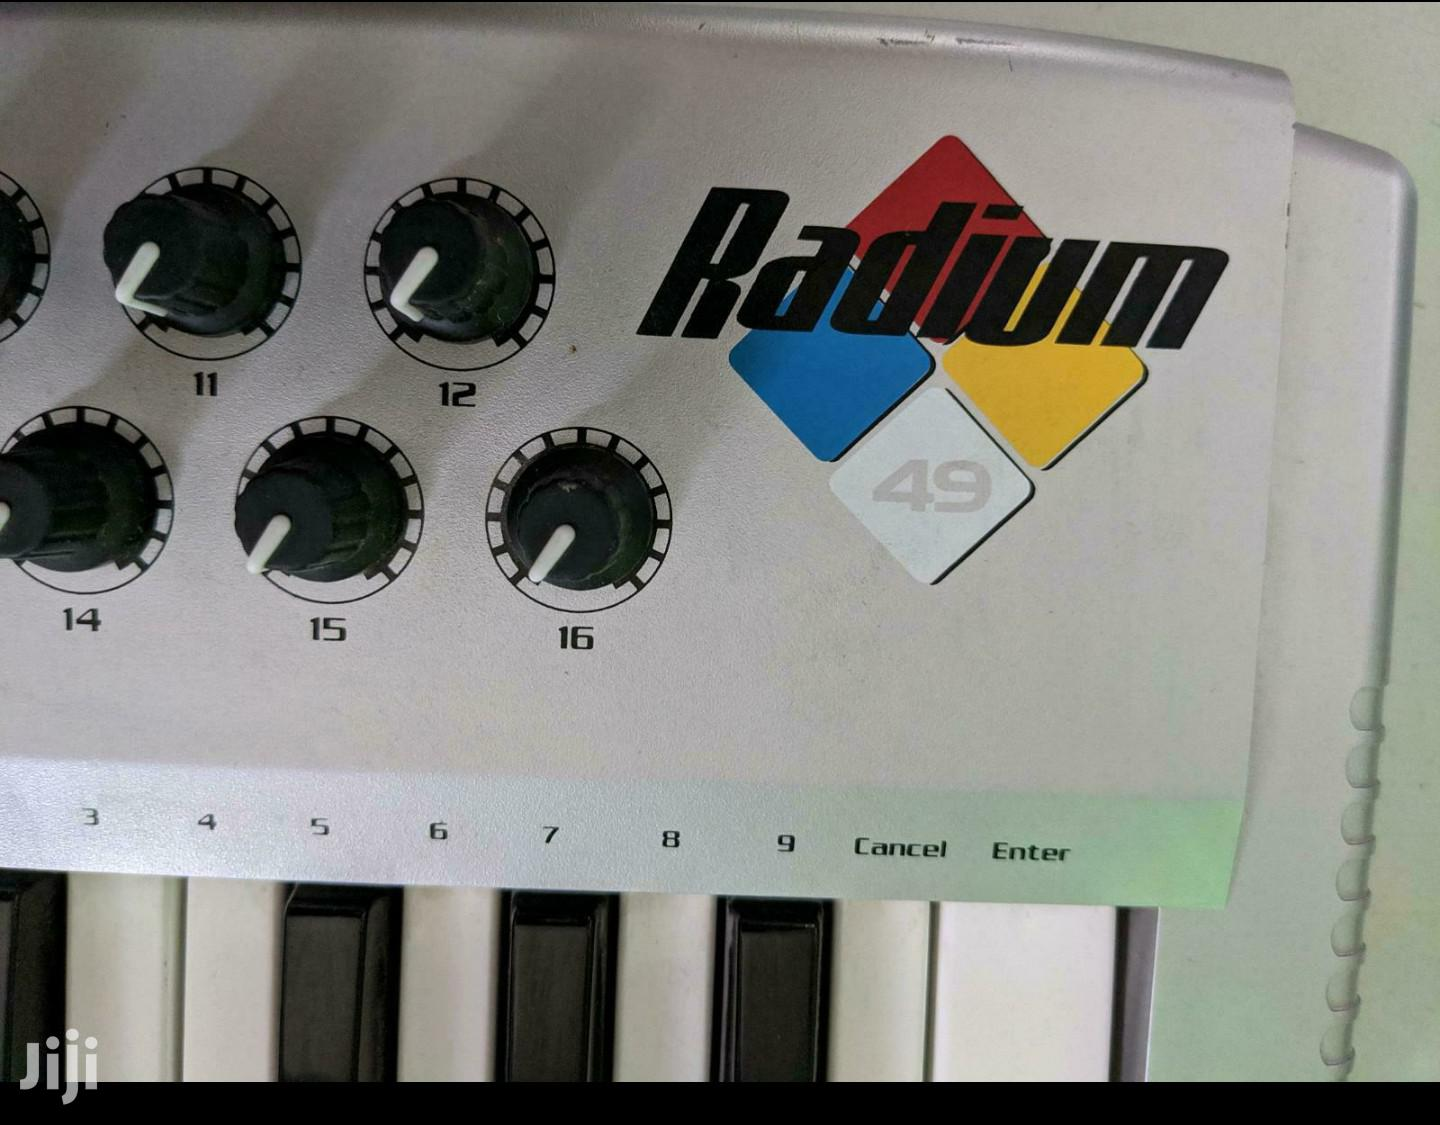 M Audio Radium USB Midi Keyboard 49 | Musical Instruments & Gear for sale in Alajo, Greater Accra, Ghana